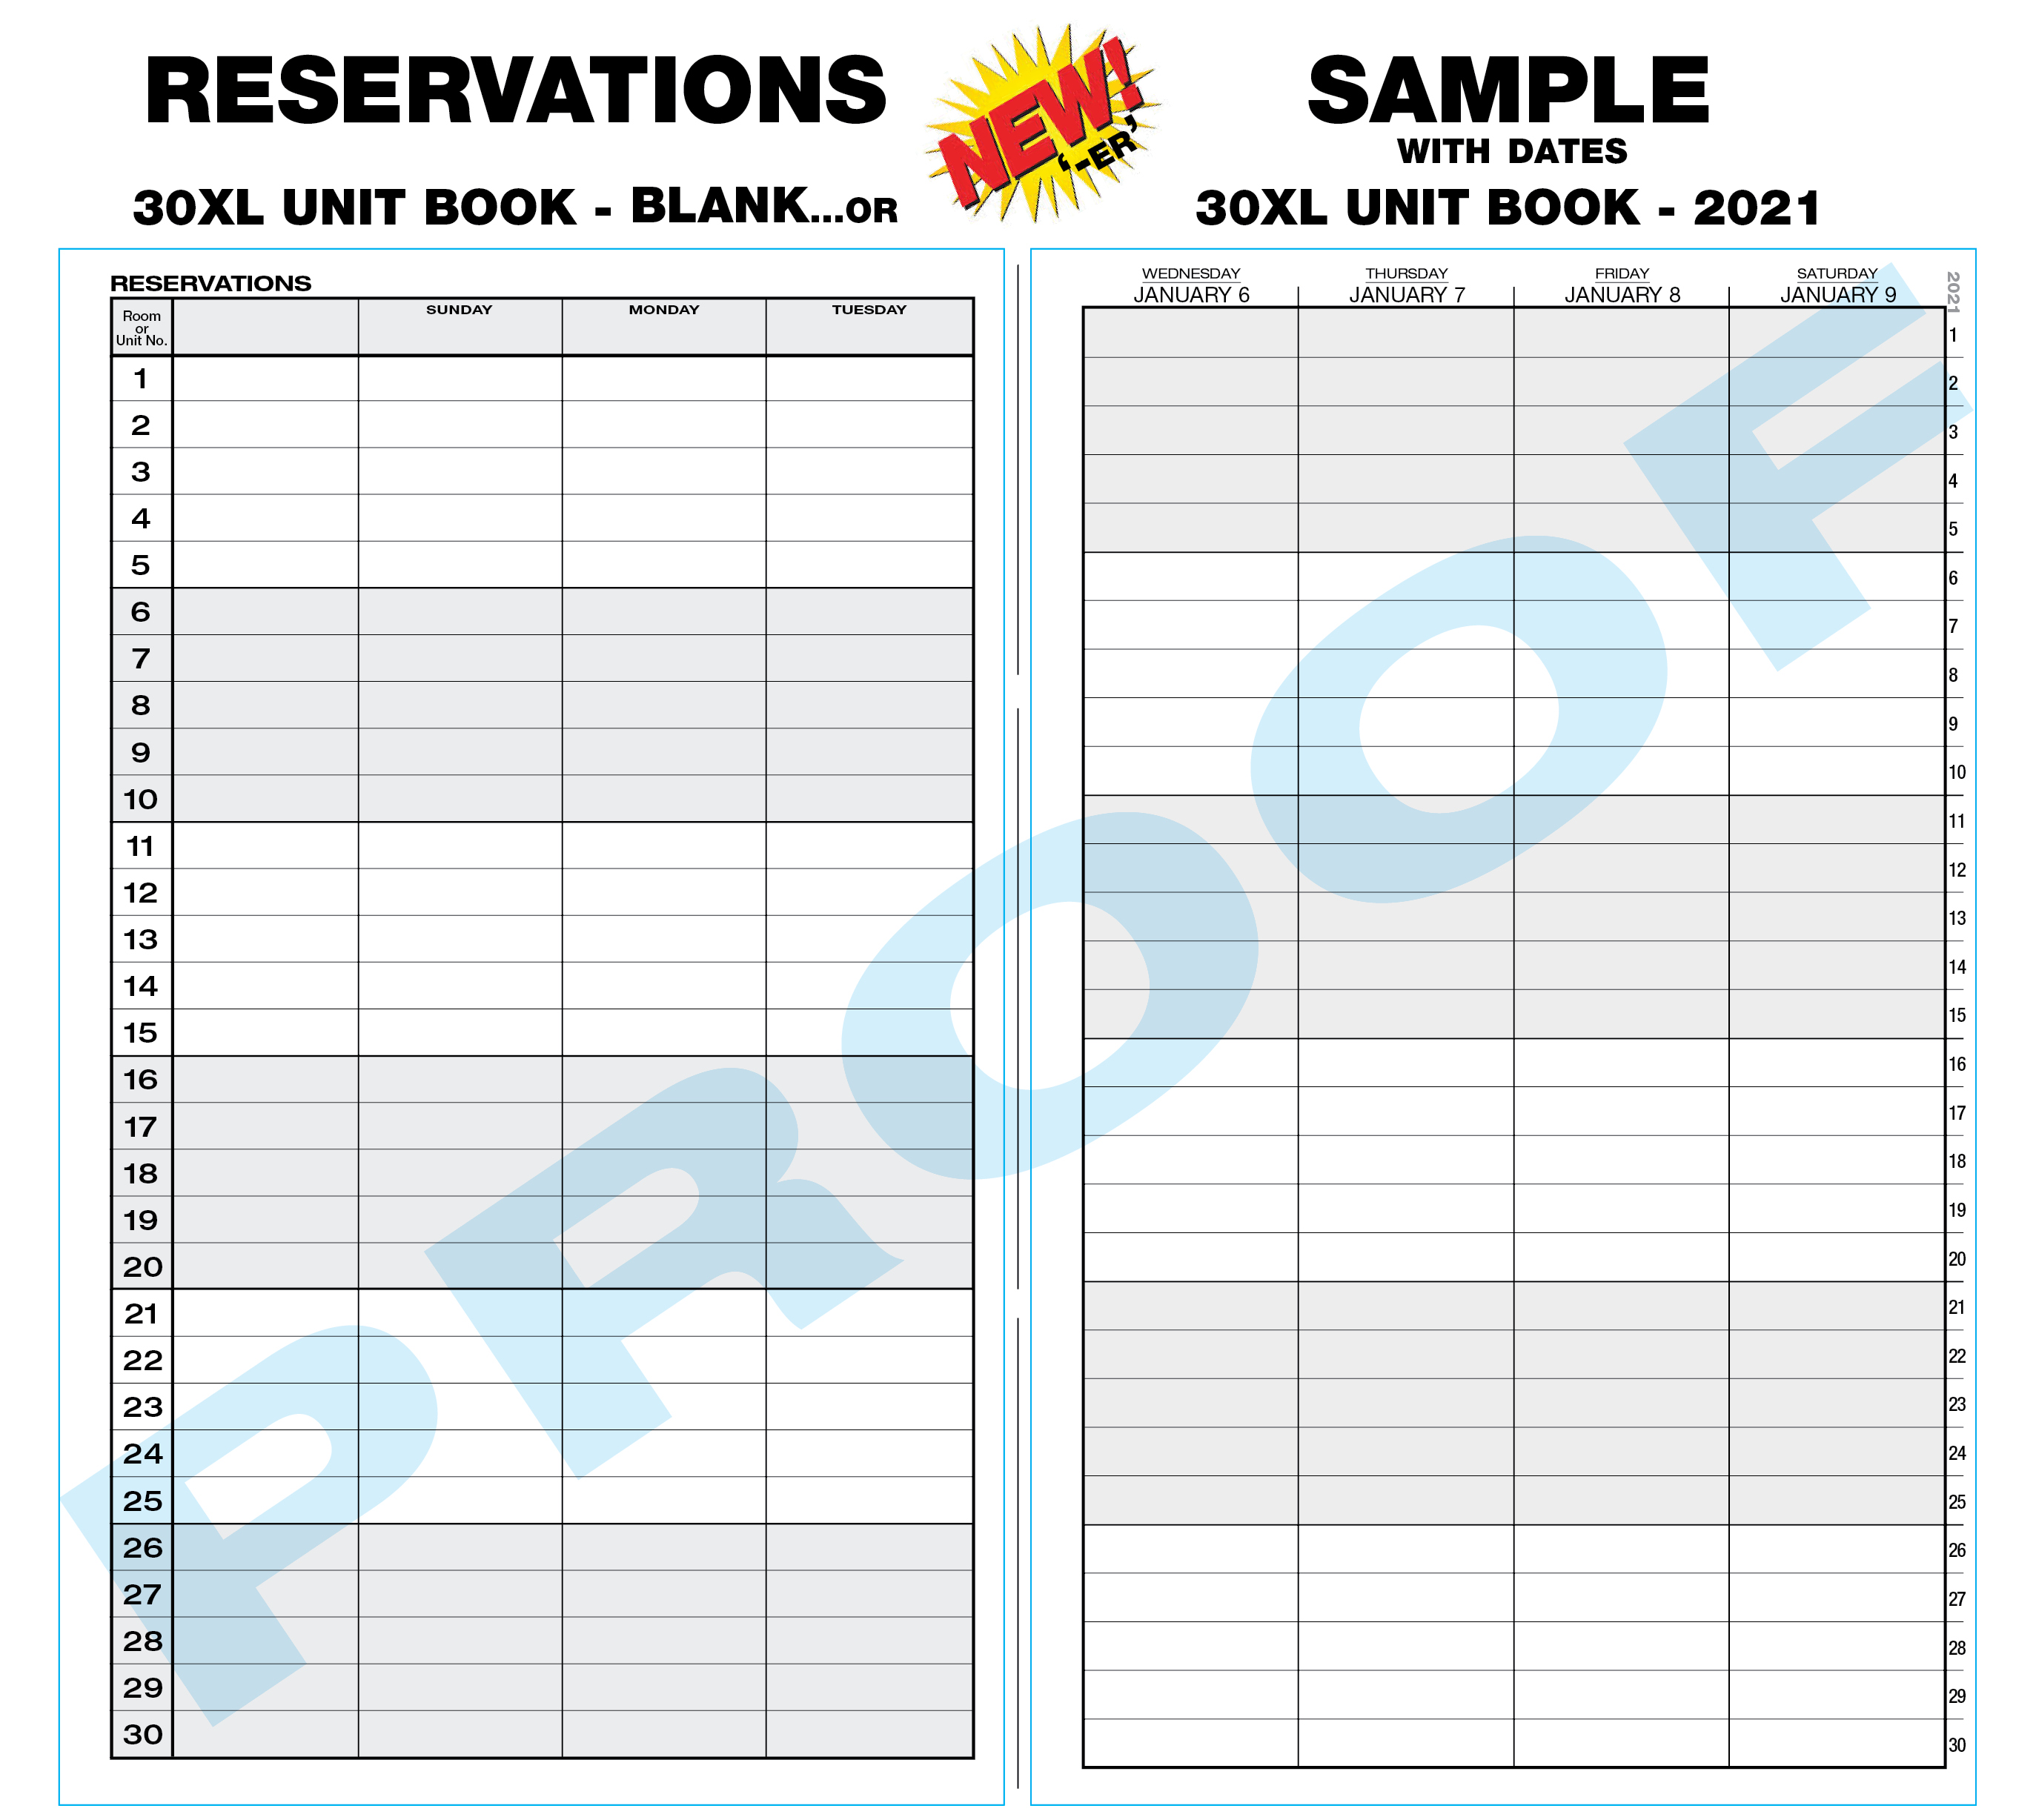 NEW 30XL Reservation Book - blank or predated